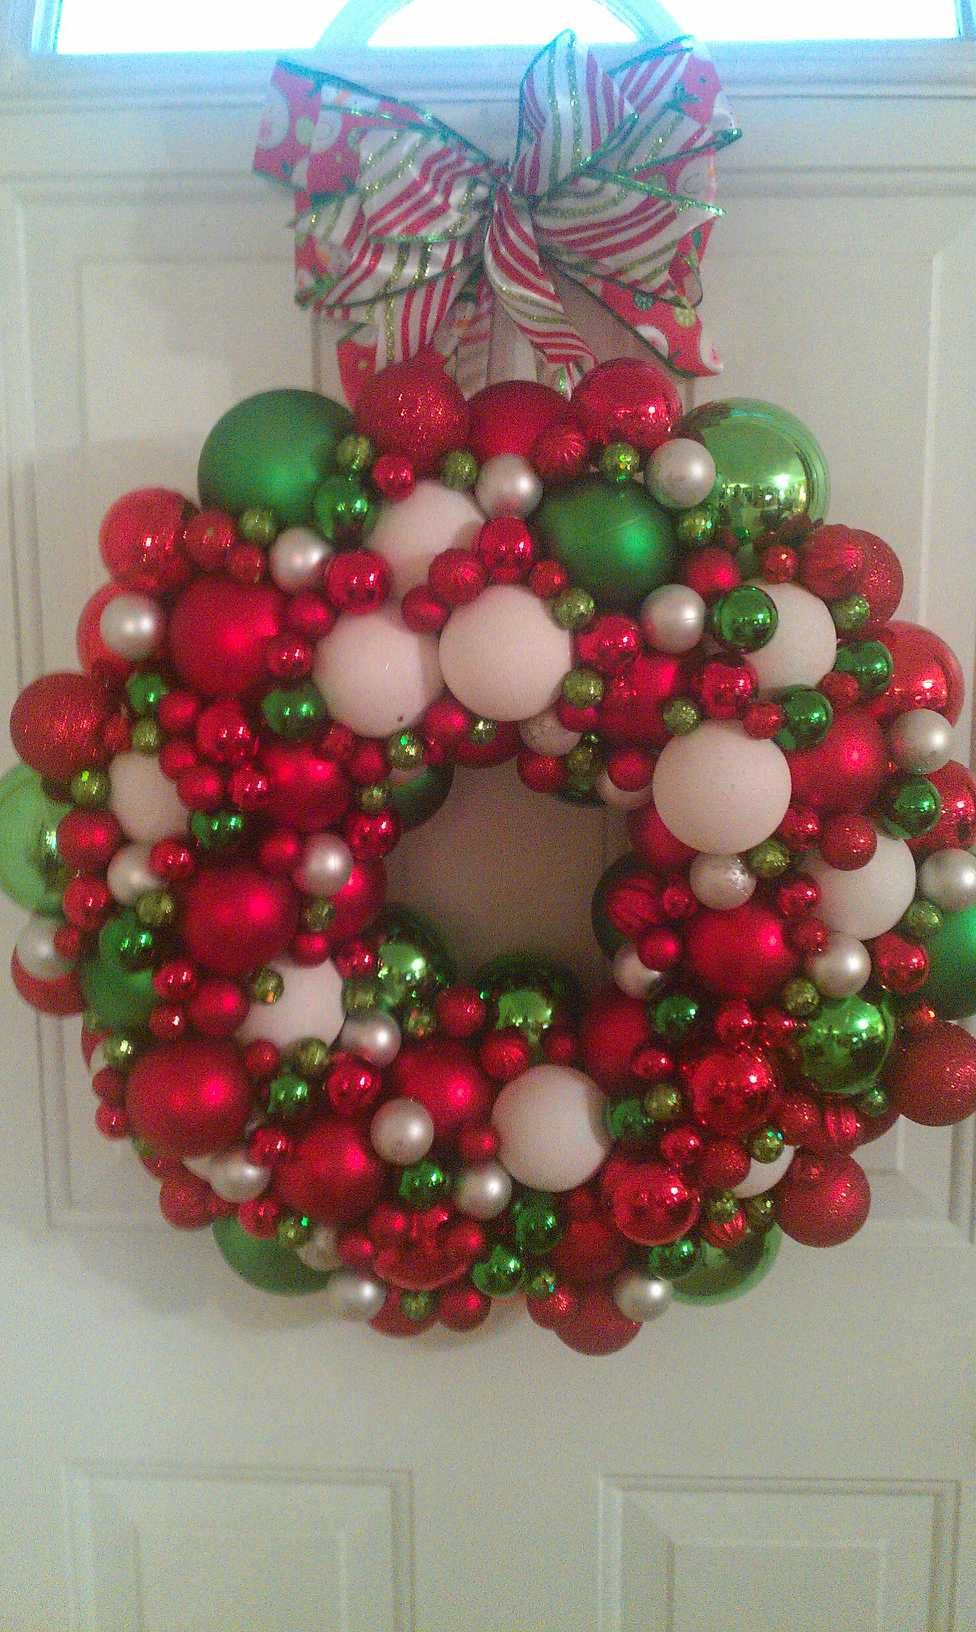 I saw this on pinterest almost a year ago and decided to make one. I used a styro-foam wreath & non- breakable Christmas ornaments of various sizes. I lost count. I started with the largest size, spaced them out  glued them with the top down. (Take off the cap) Then I just continued with the next largest size and so on, filling in the gaps as I went. I attached a bow (wired ribbon) with long streamers which I stapled to the back of the wreath. I loved the way it turned out!